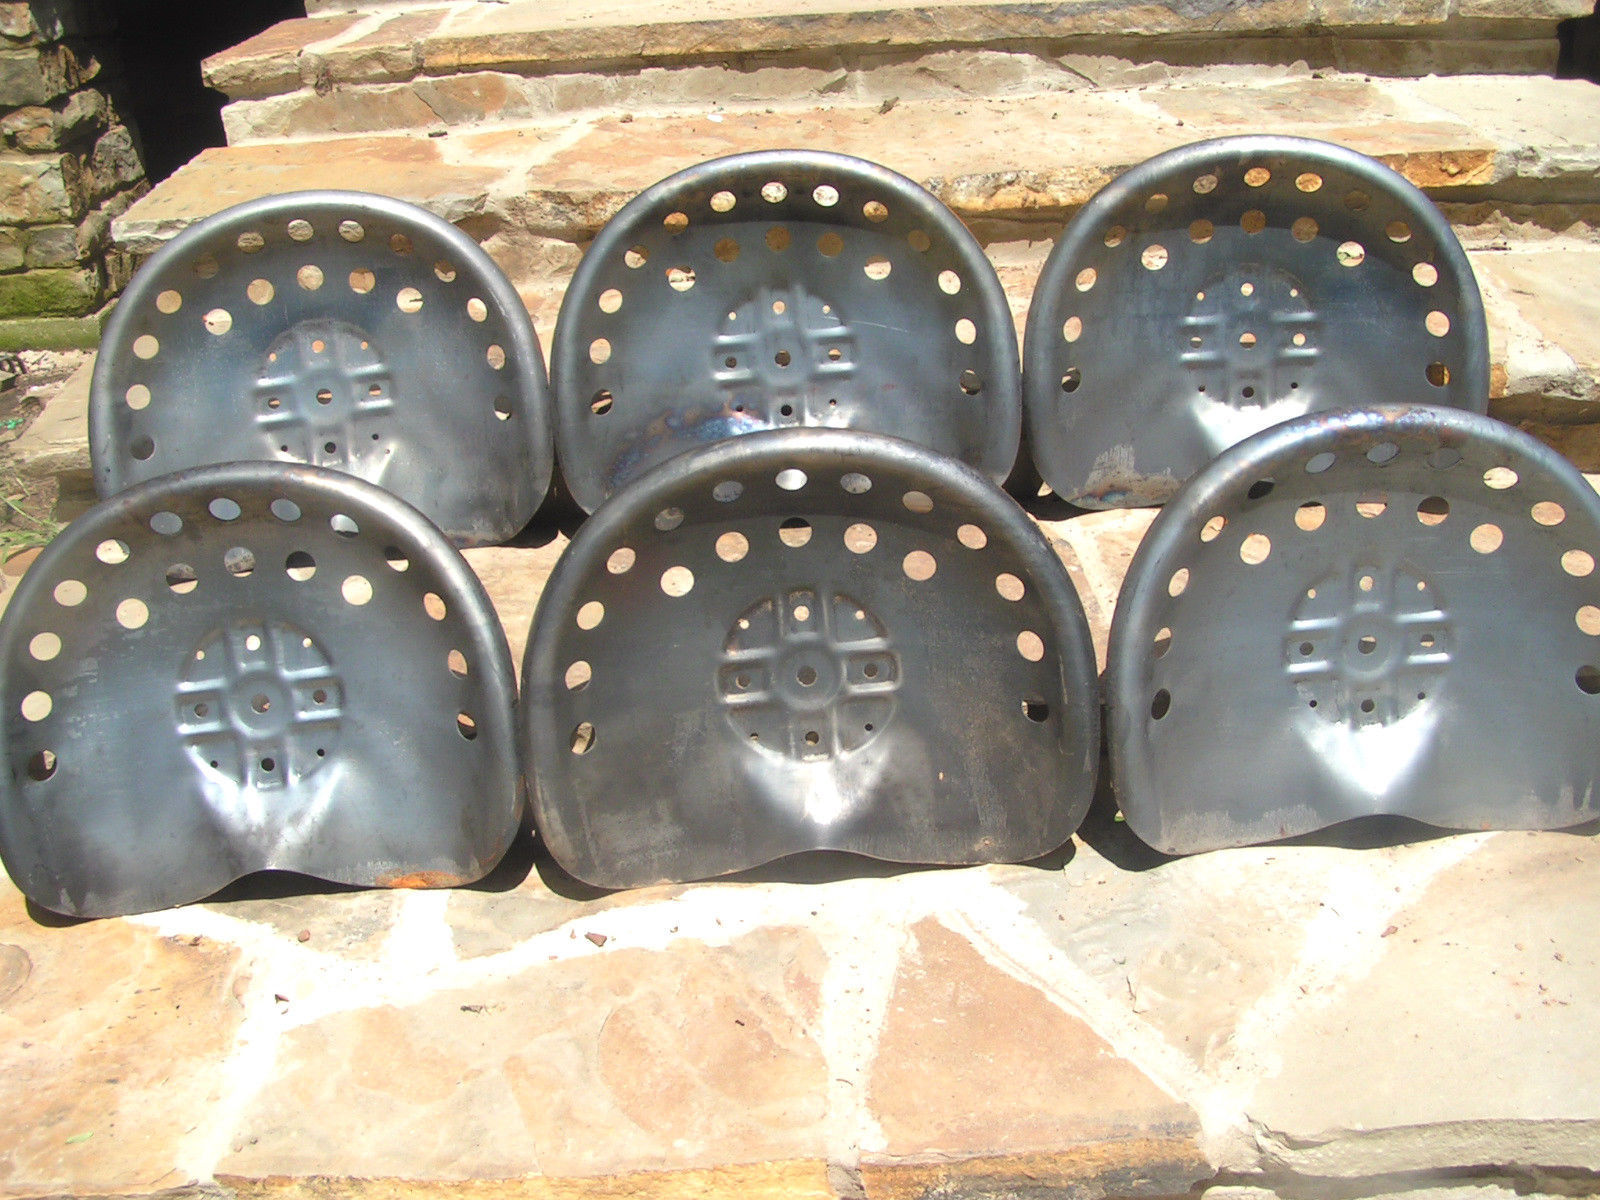 SIX Steel Tractor seat Bar Stool tops New Old Style  : SIXsteeltractorseatspanstyle3 from www.bonanza.com size 1600 x 1200 jpeg 391kB